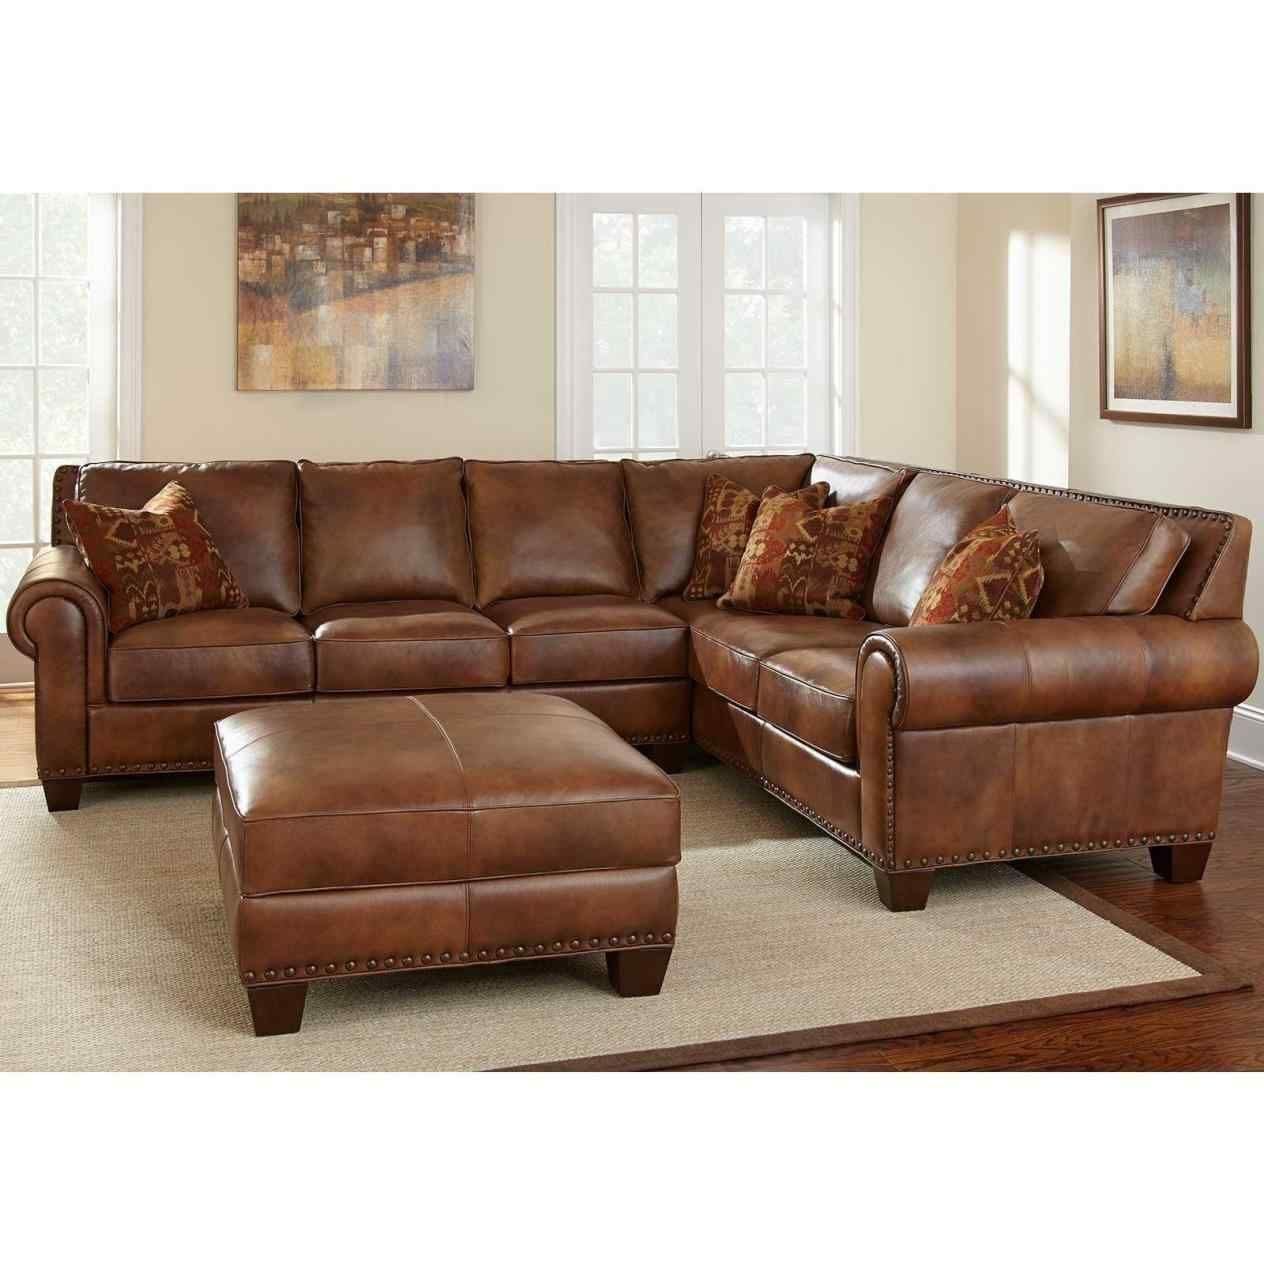 Lemon Hill Plan Marge Sectional Sofas Colorado Springs Carson Sofa Google Search American Leather Astoria U Fabric In